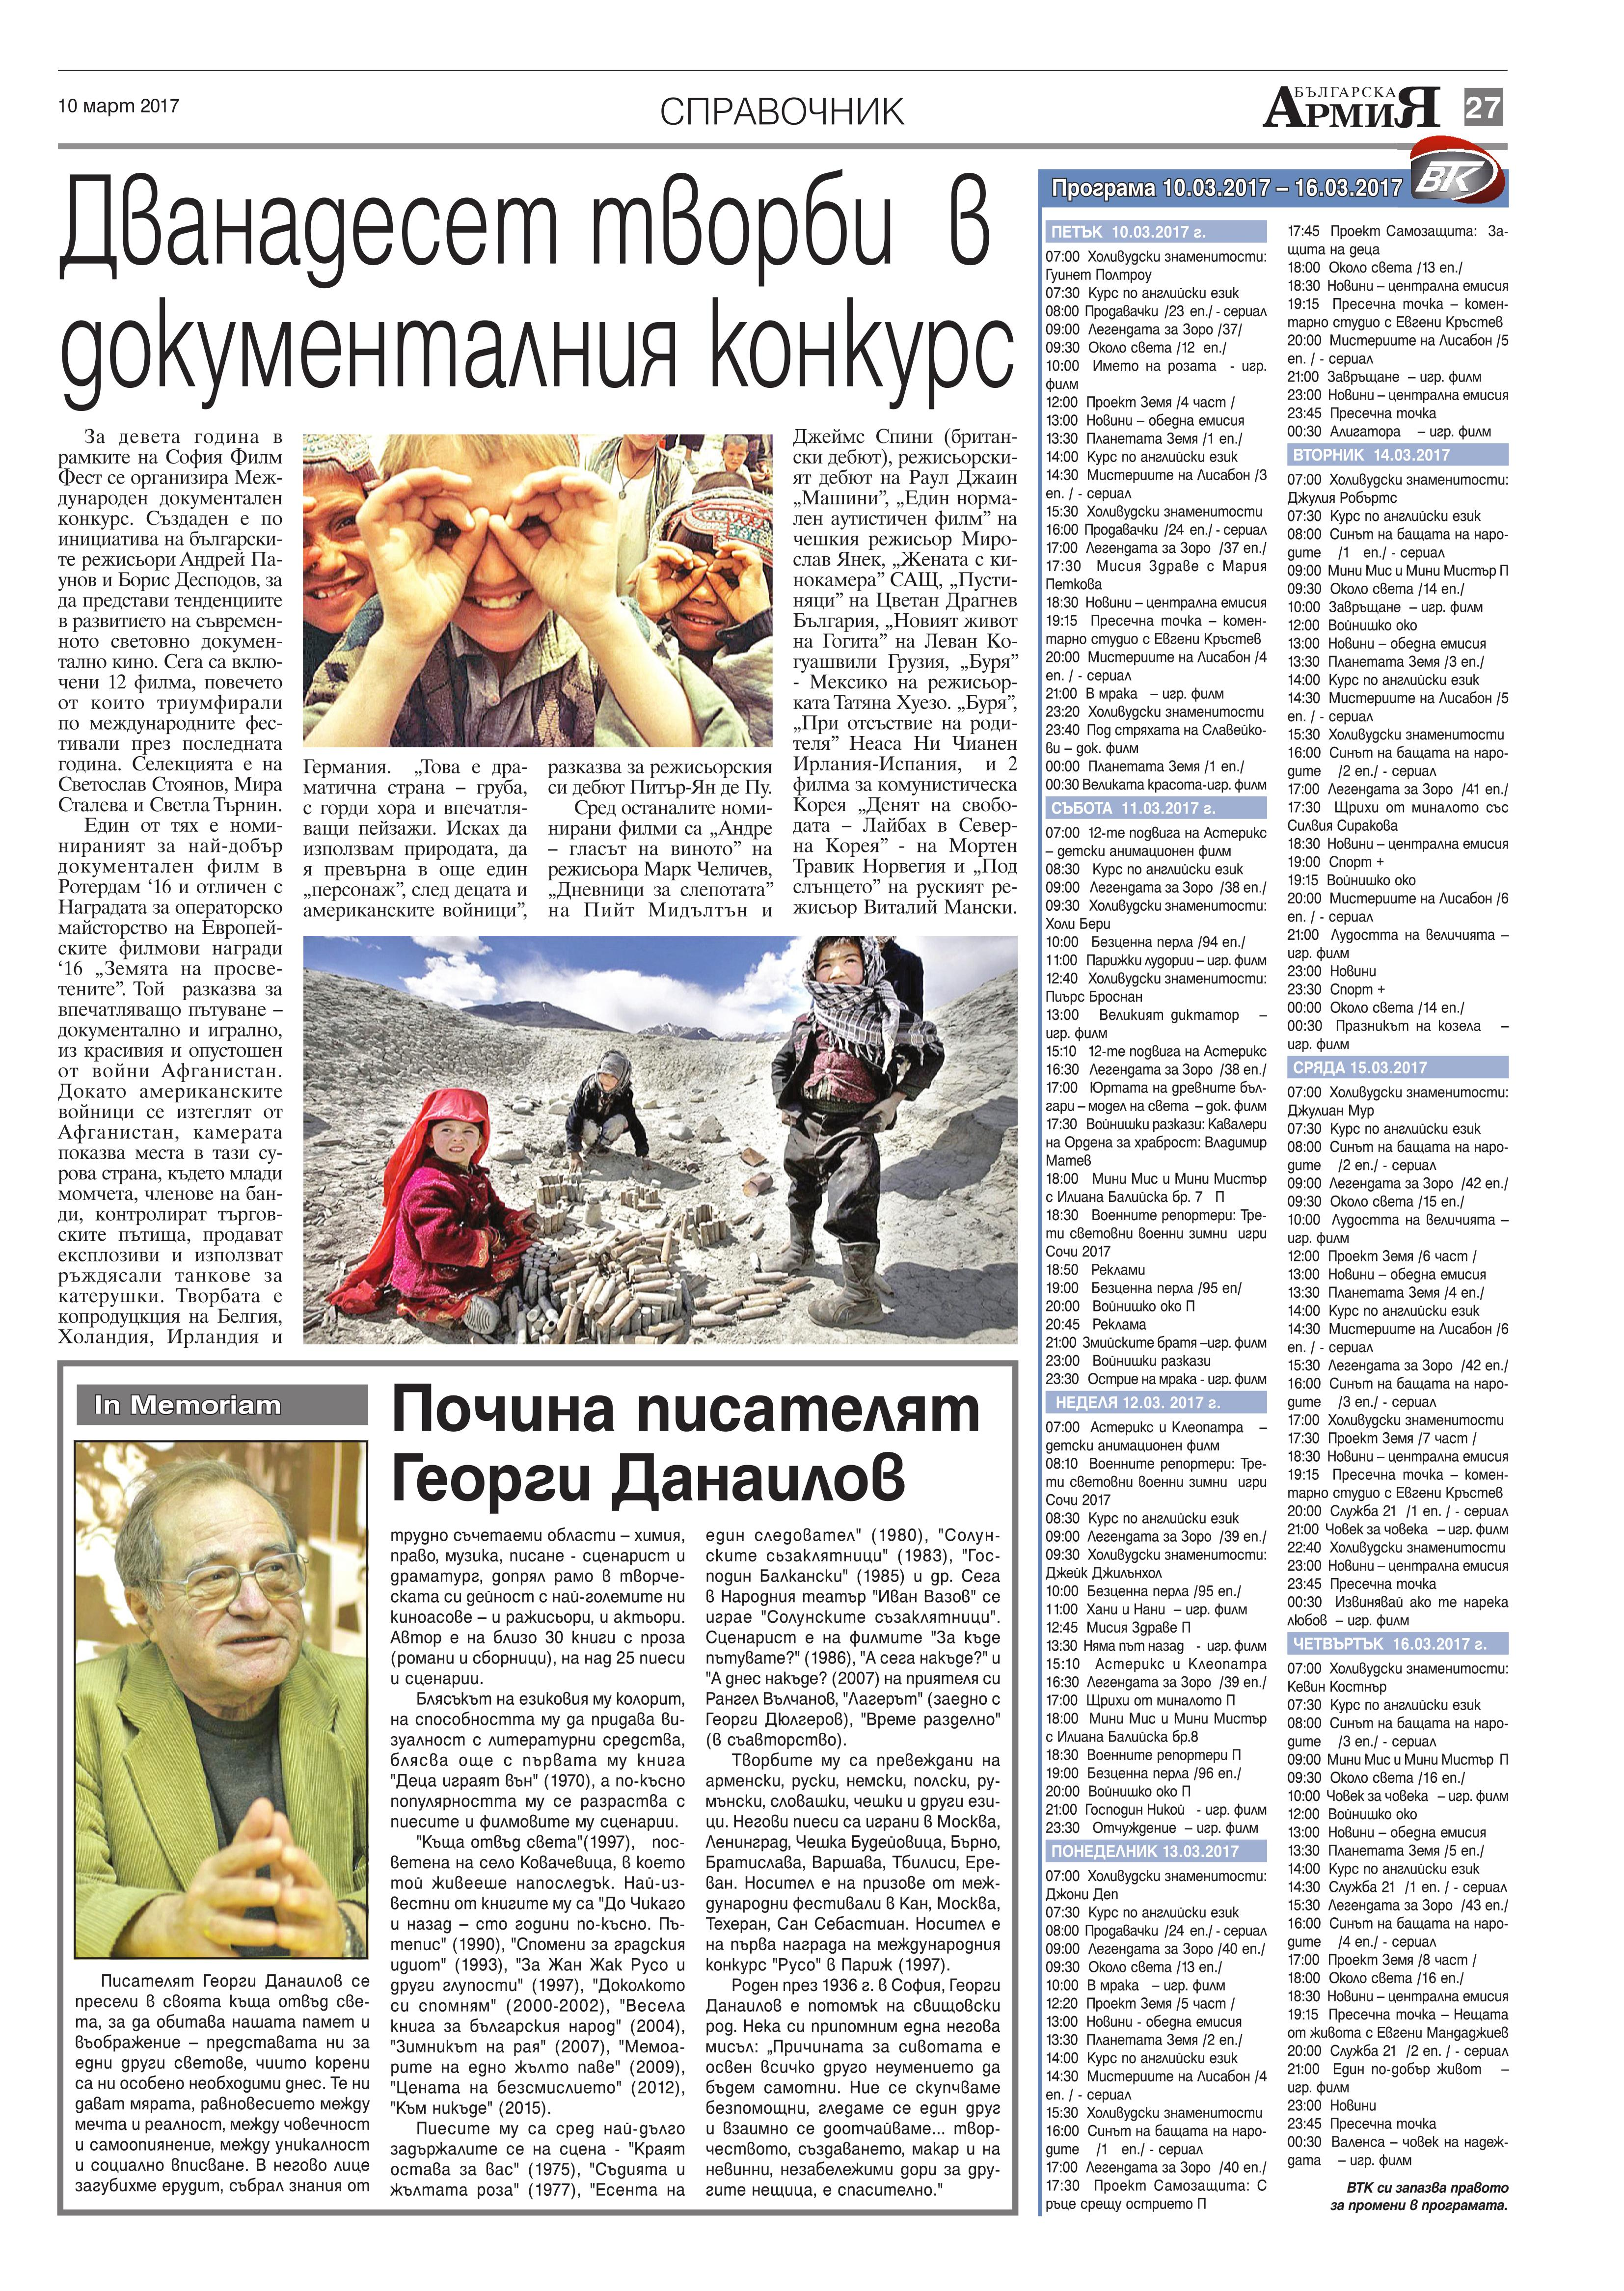 https://www.armymedia.bg/wp-content/uploads/2015/06/27.page1_-14.jpg